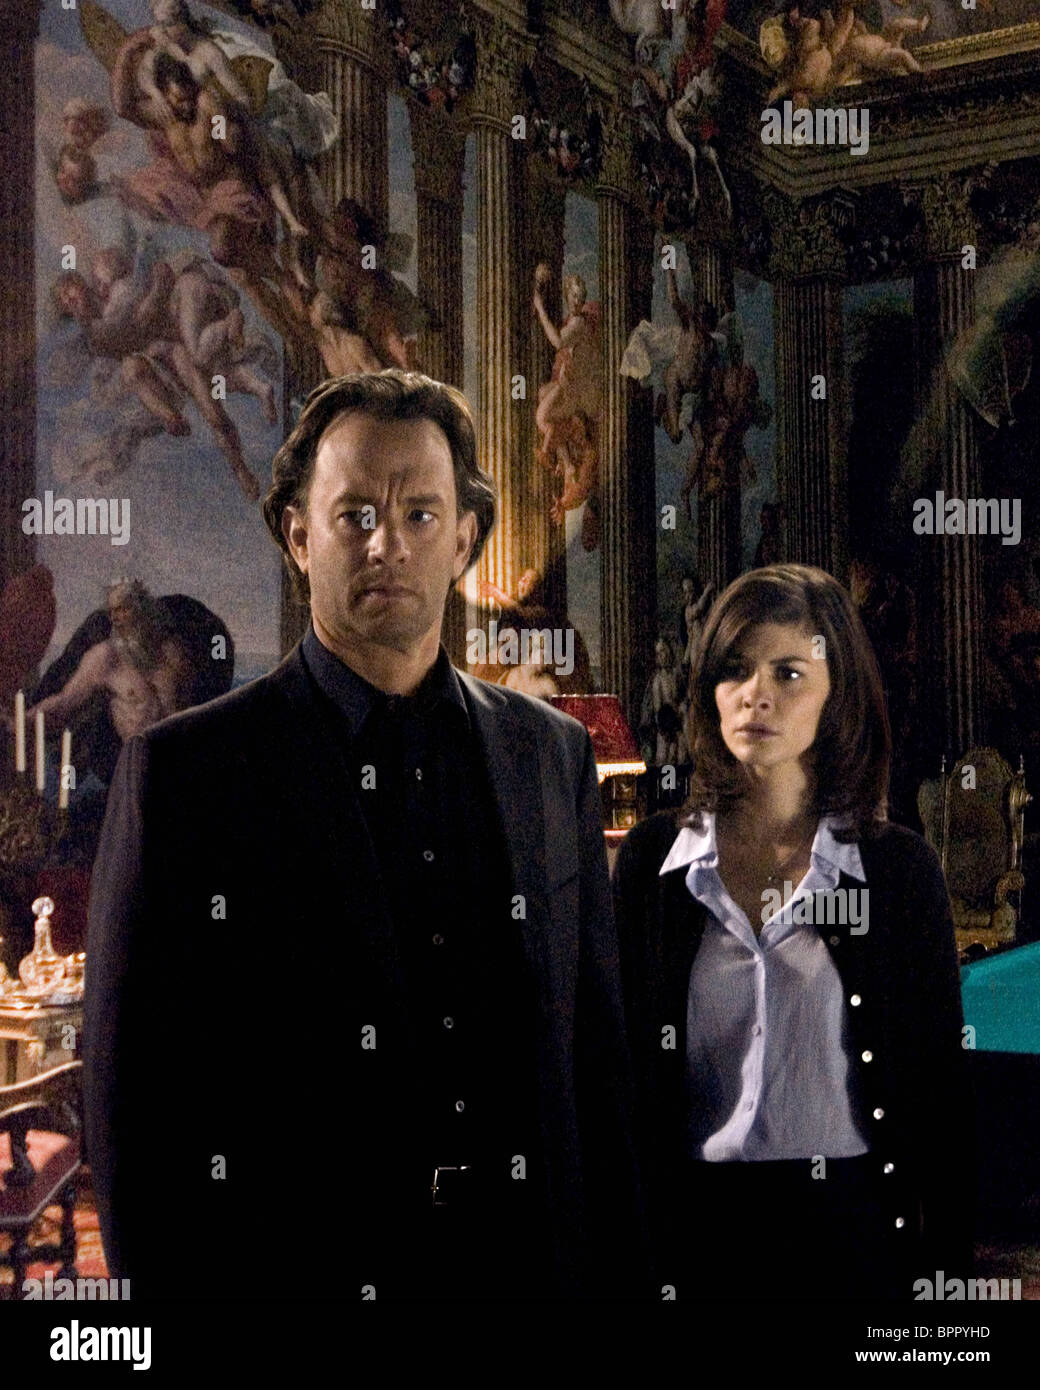 Tom Hanks Audrey Tautou The Da Vinci Code 2006 Stock Photo Alamy